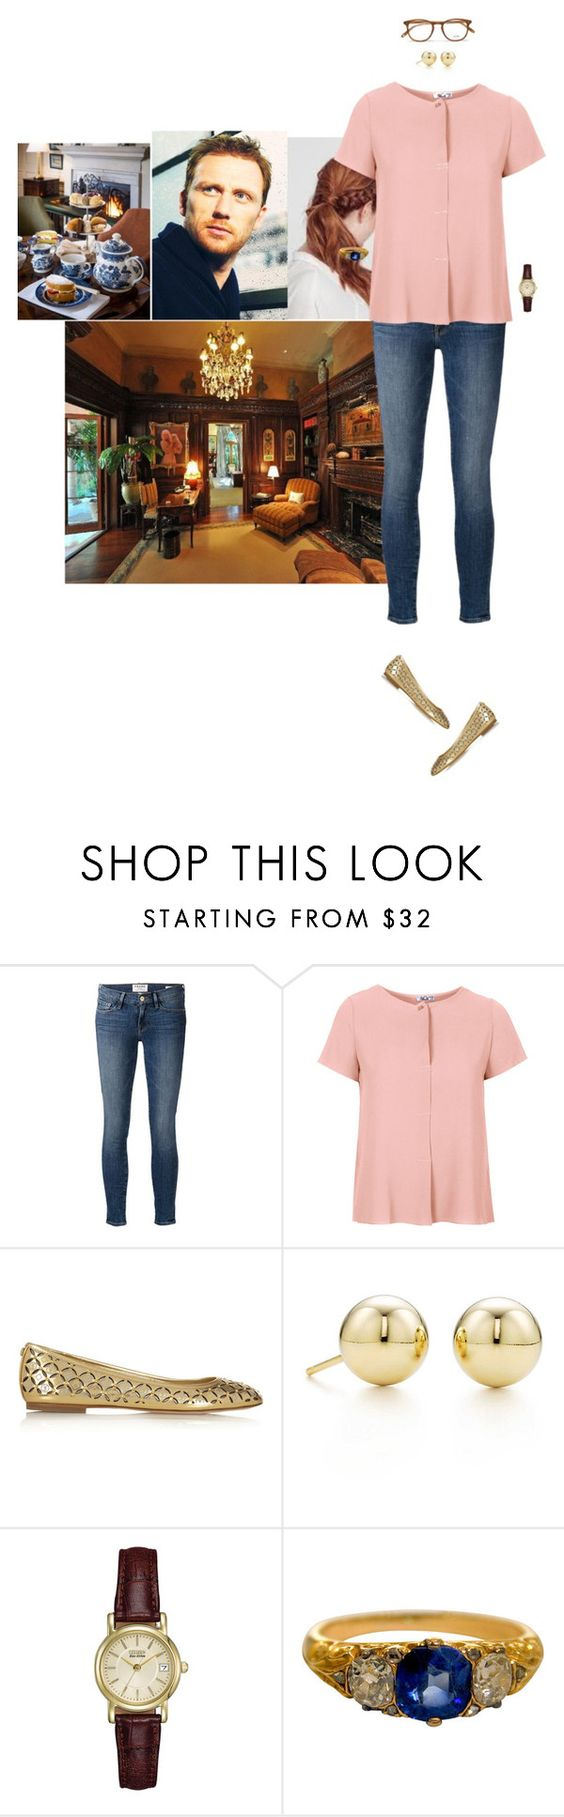 """""""Having afternoon tea with her father at his study and being informed of her investiture into the Order of the Thistle"""" by hrhprincessamelia ❤ liked on Polyvore featuring Frame Denim, WalG, MICHAEL Michael Kors, Tiffany & Co., Citizen, Garrett Leight, women's clothing, women's fashion, women and female"""